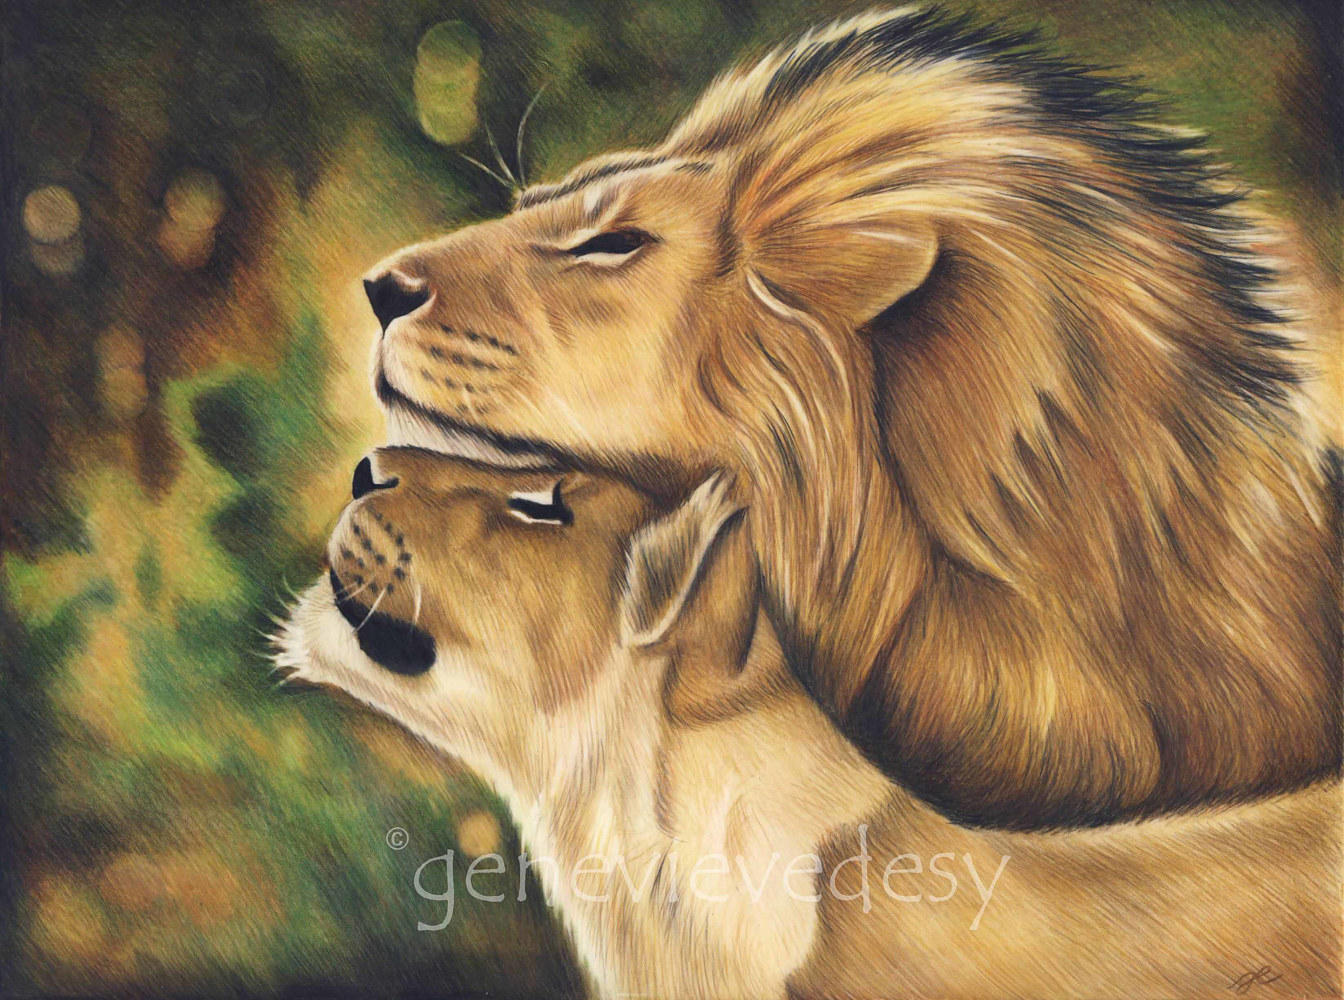 Lions, 2013 by Genevieve Desy